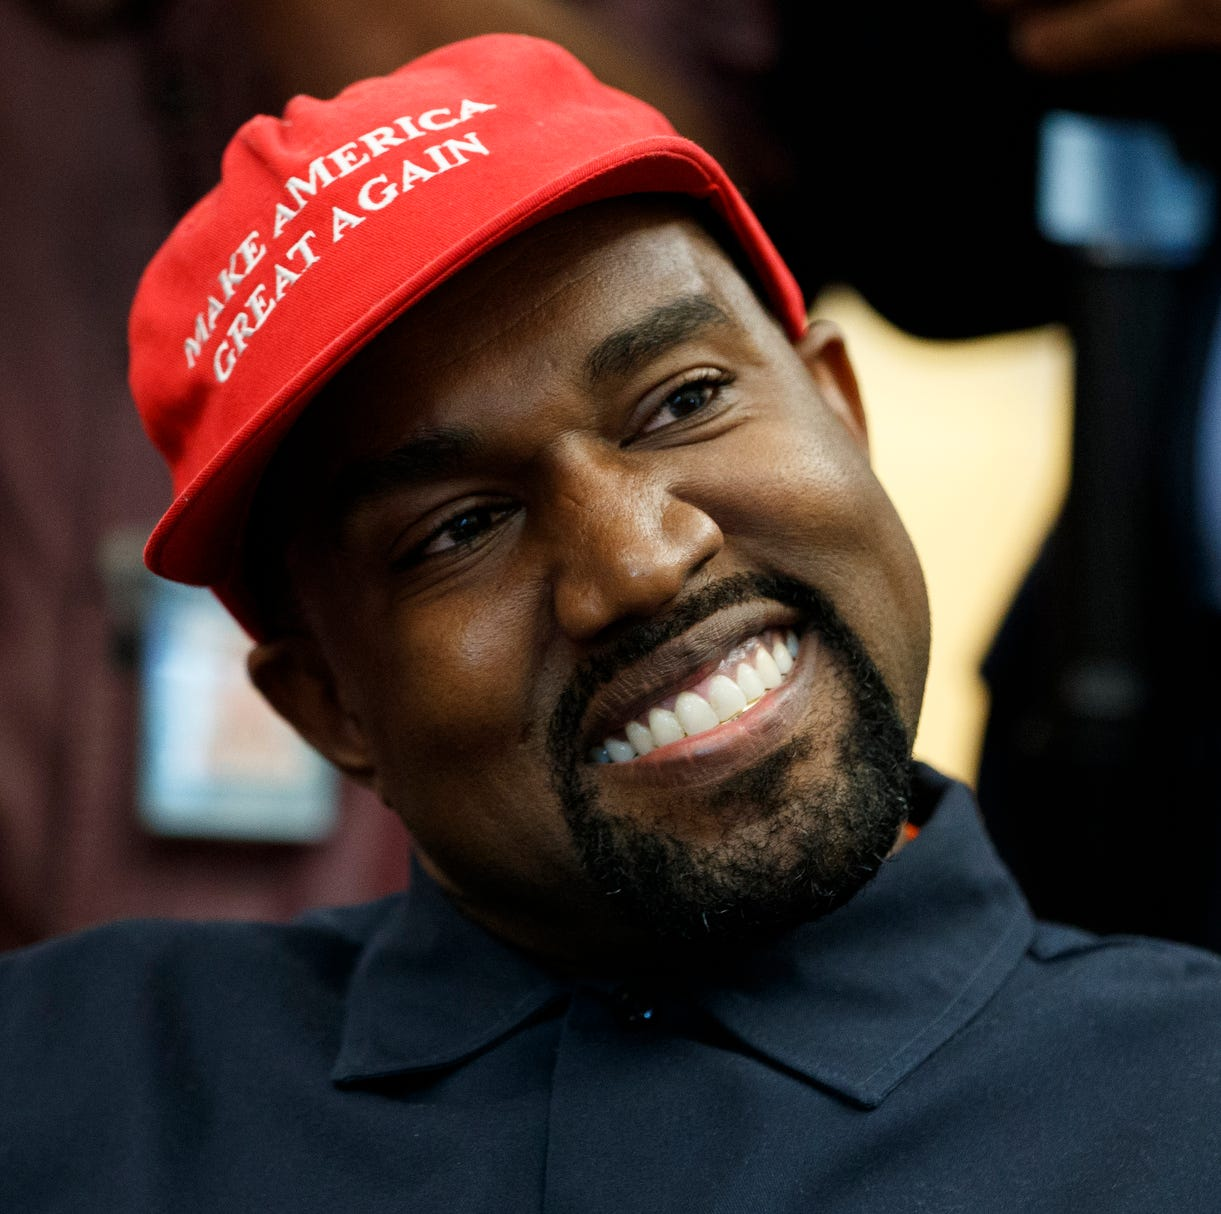 Kanye West returns to Twitter with a 'mind control' rant after one-week hiatus